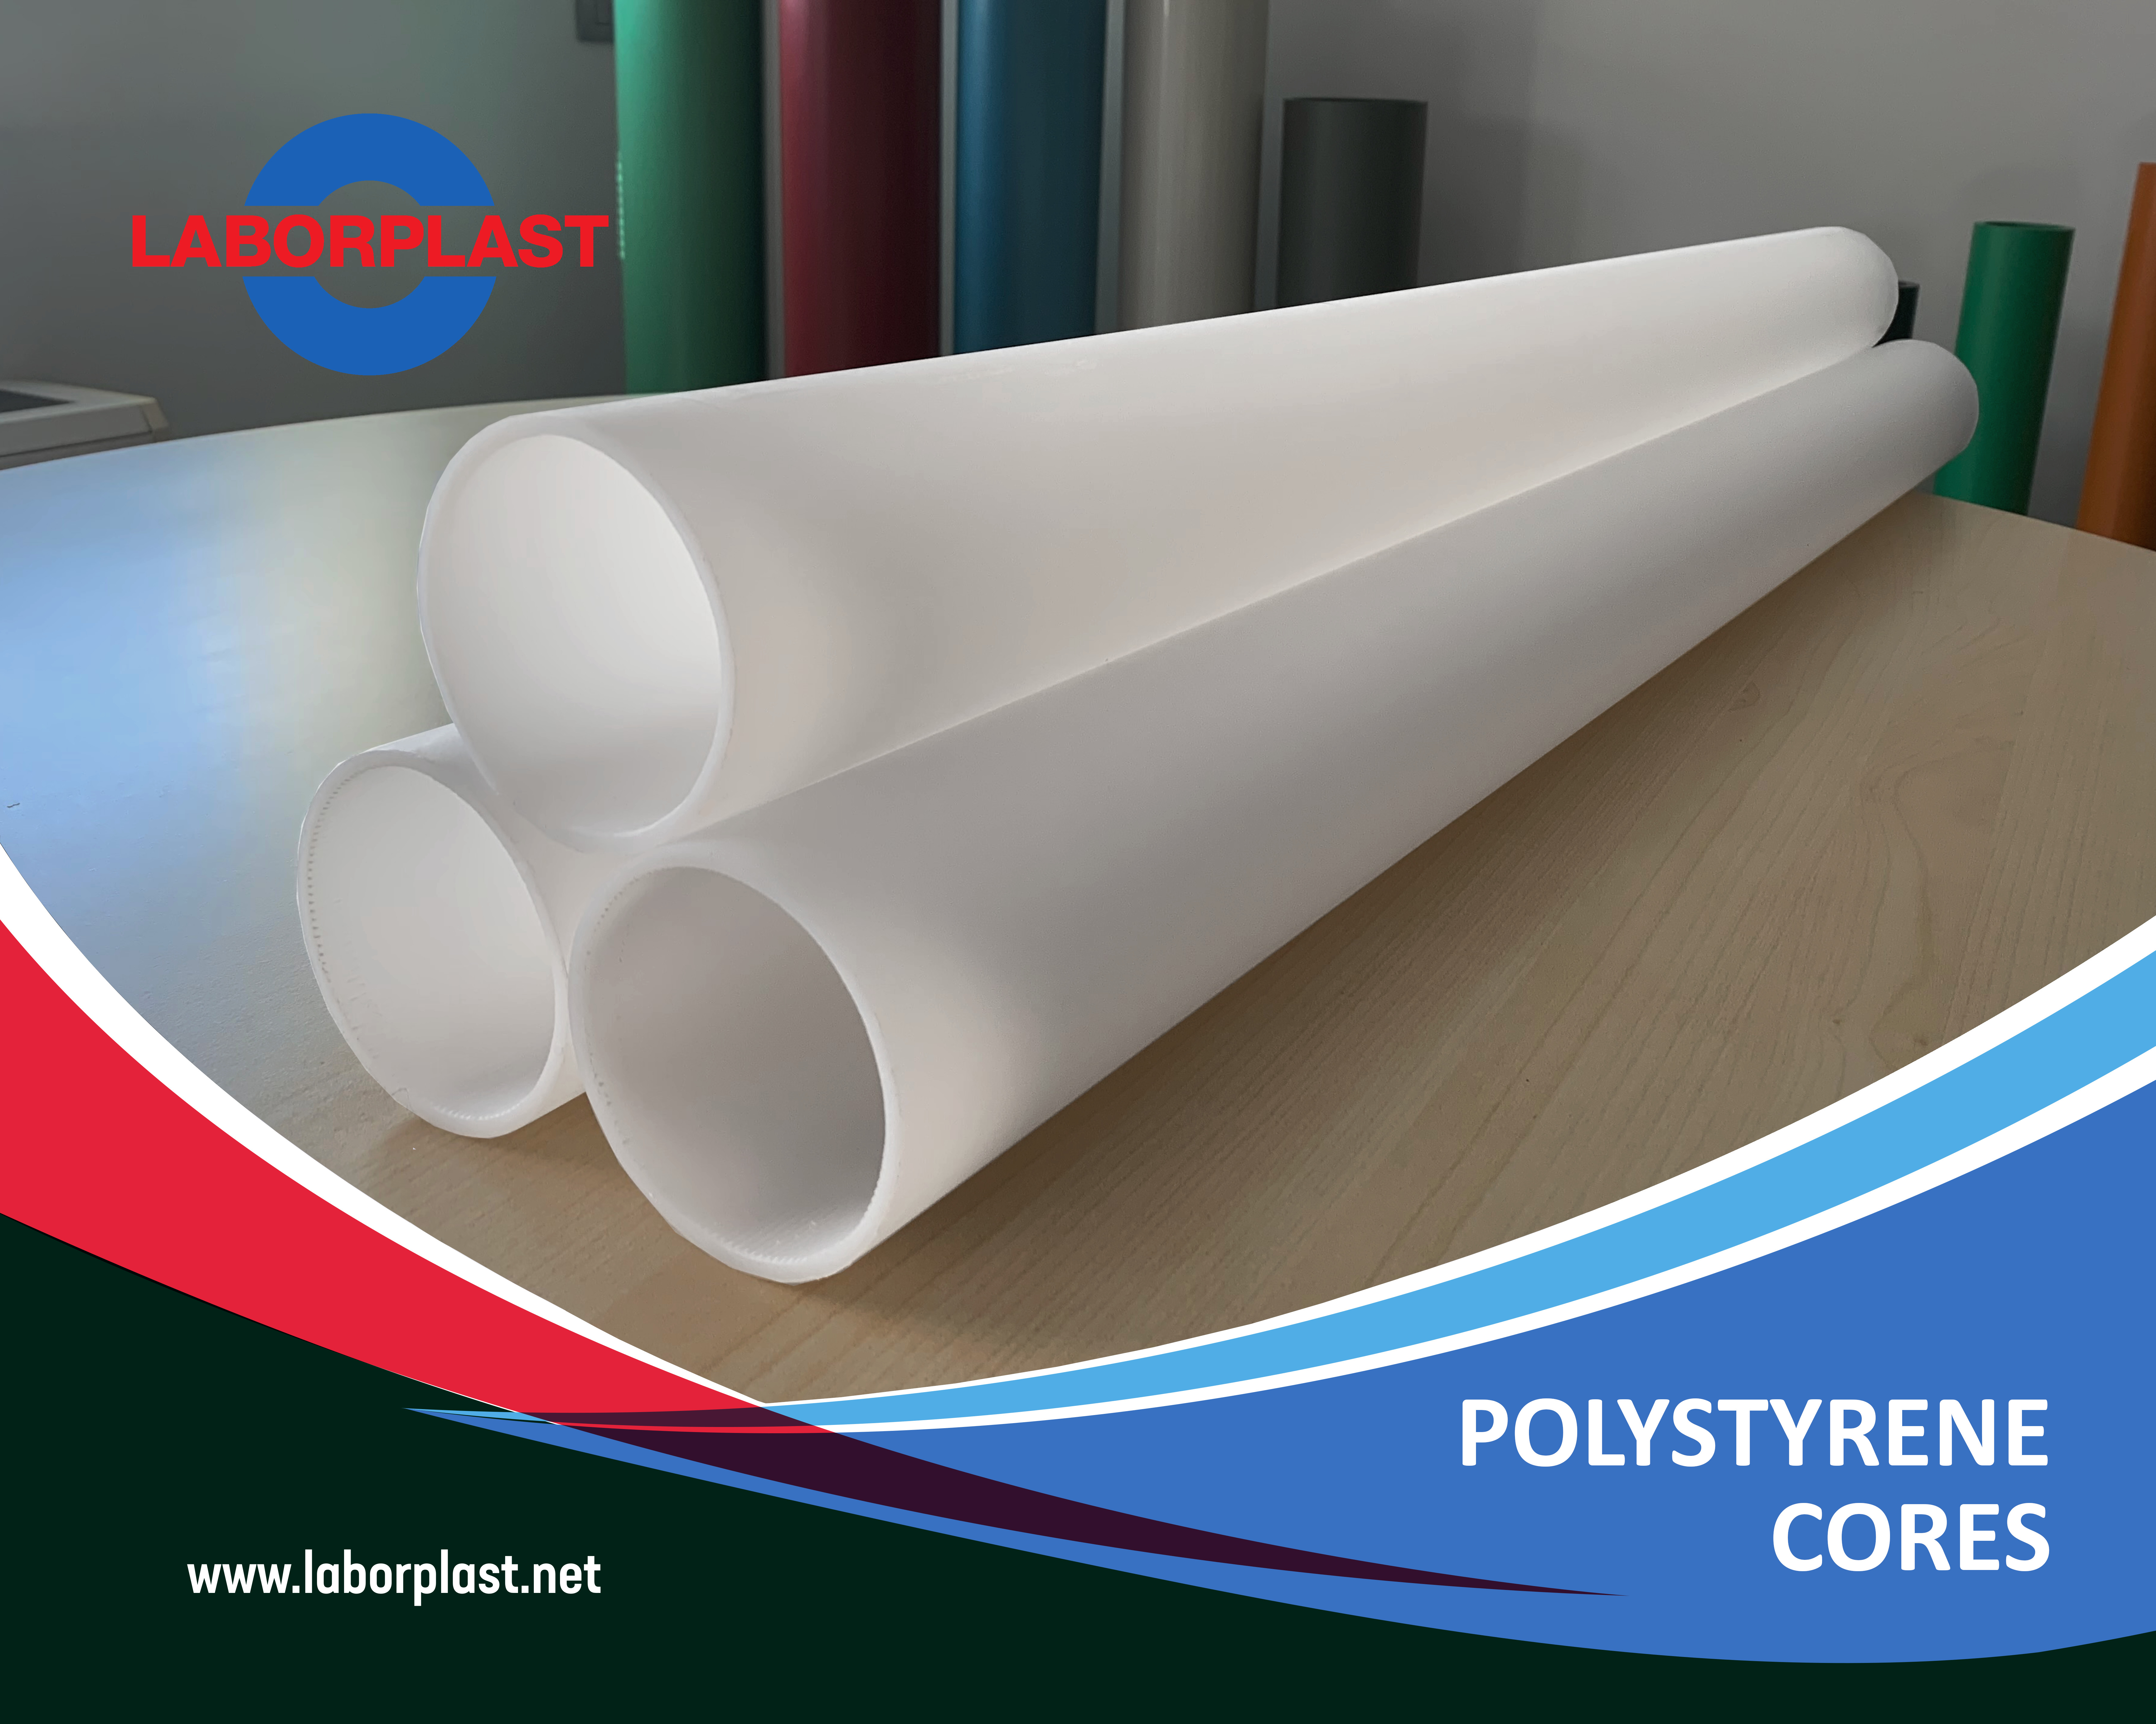 New High Impact Polystyrene cores (HIPS)